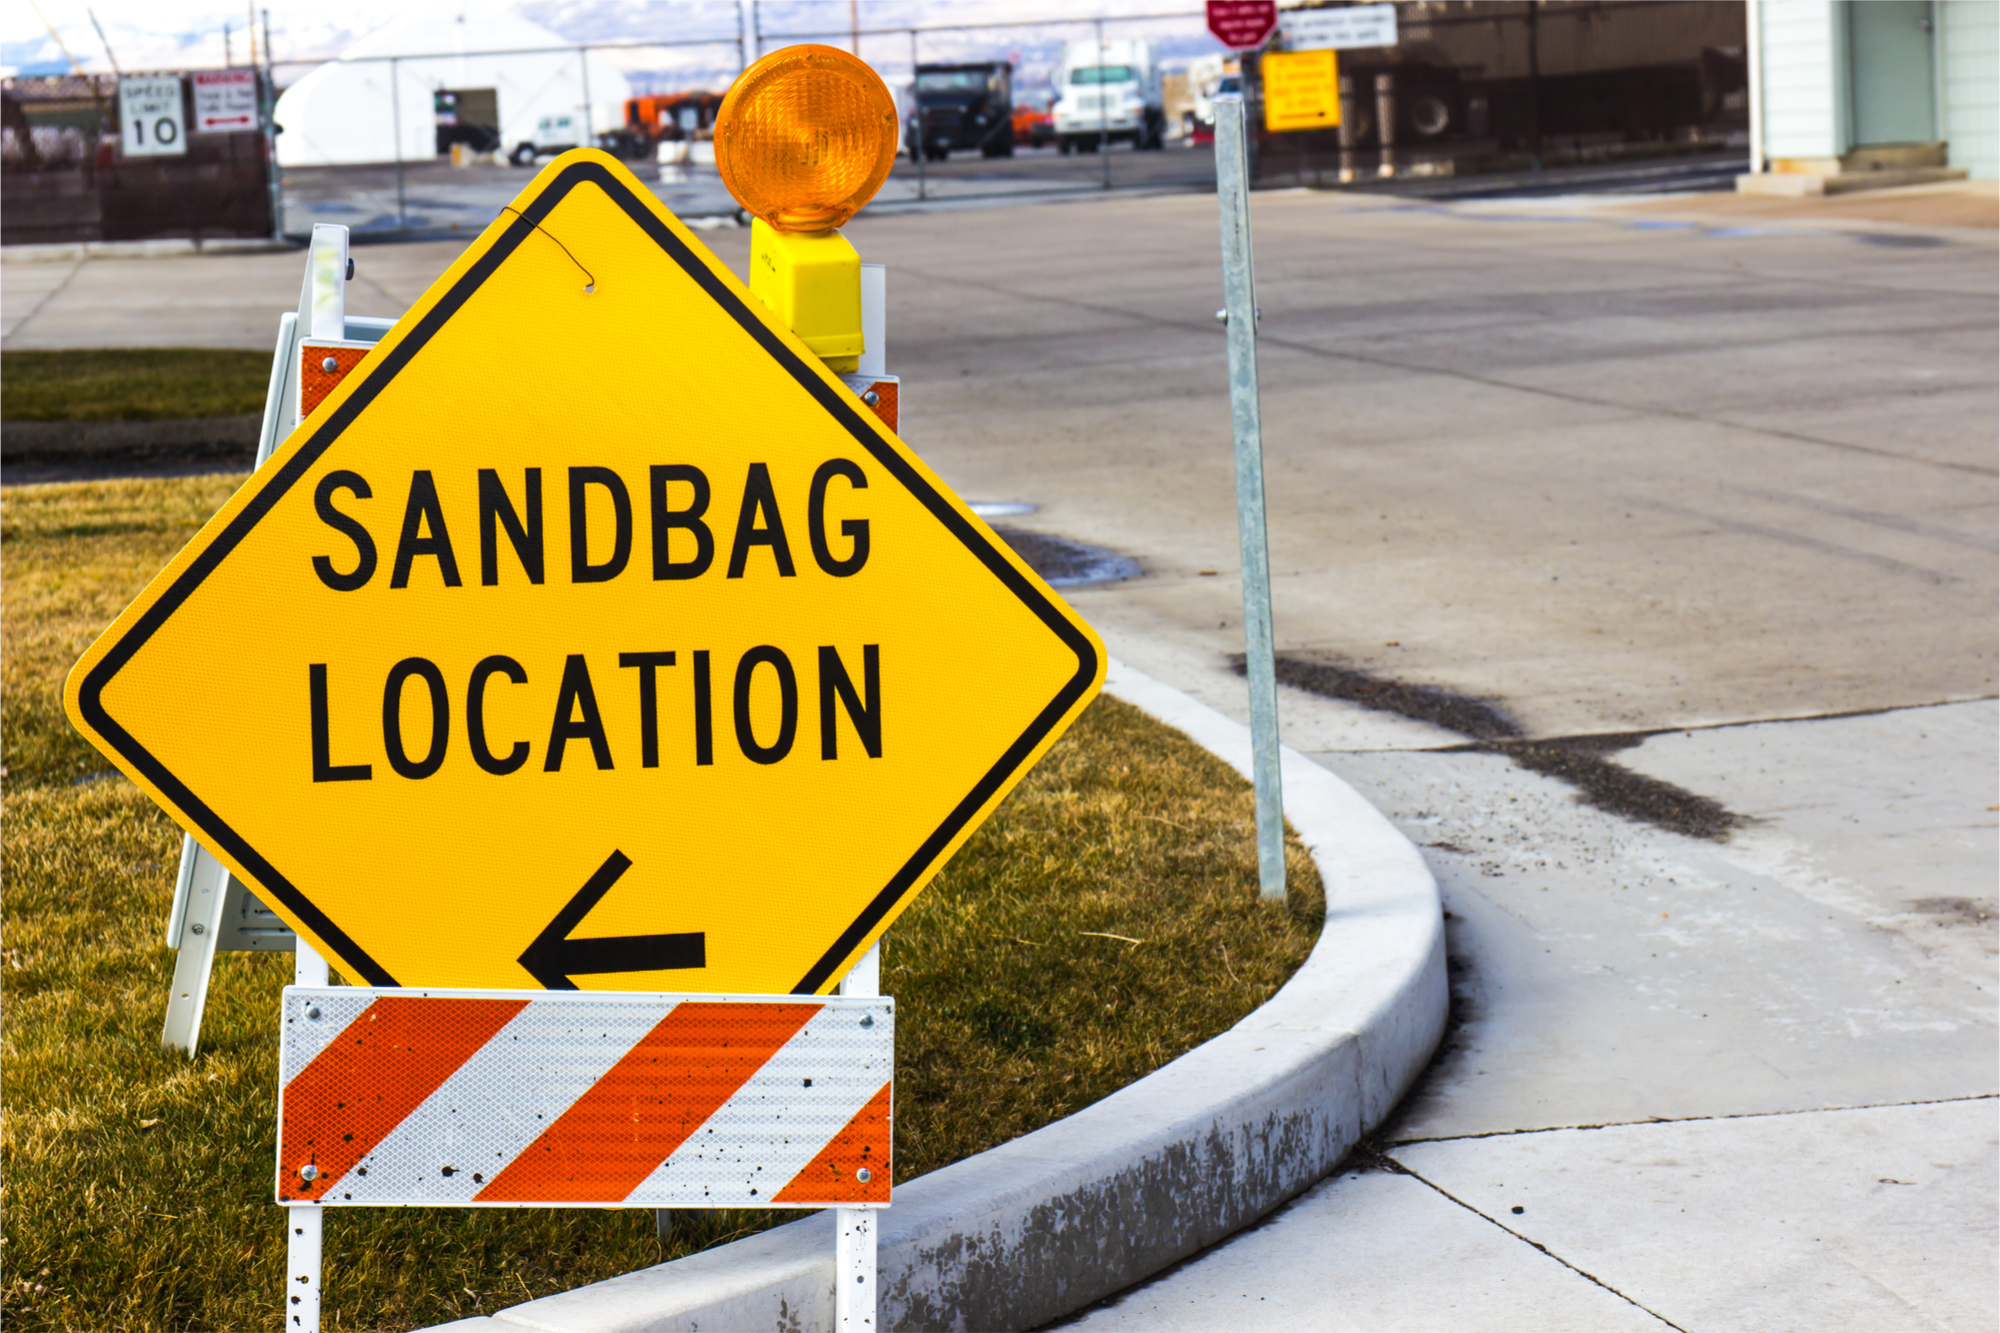 Sandbag location sign